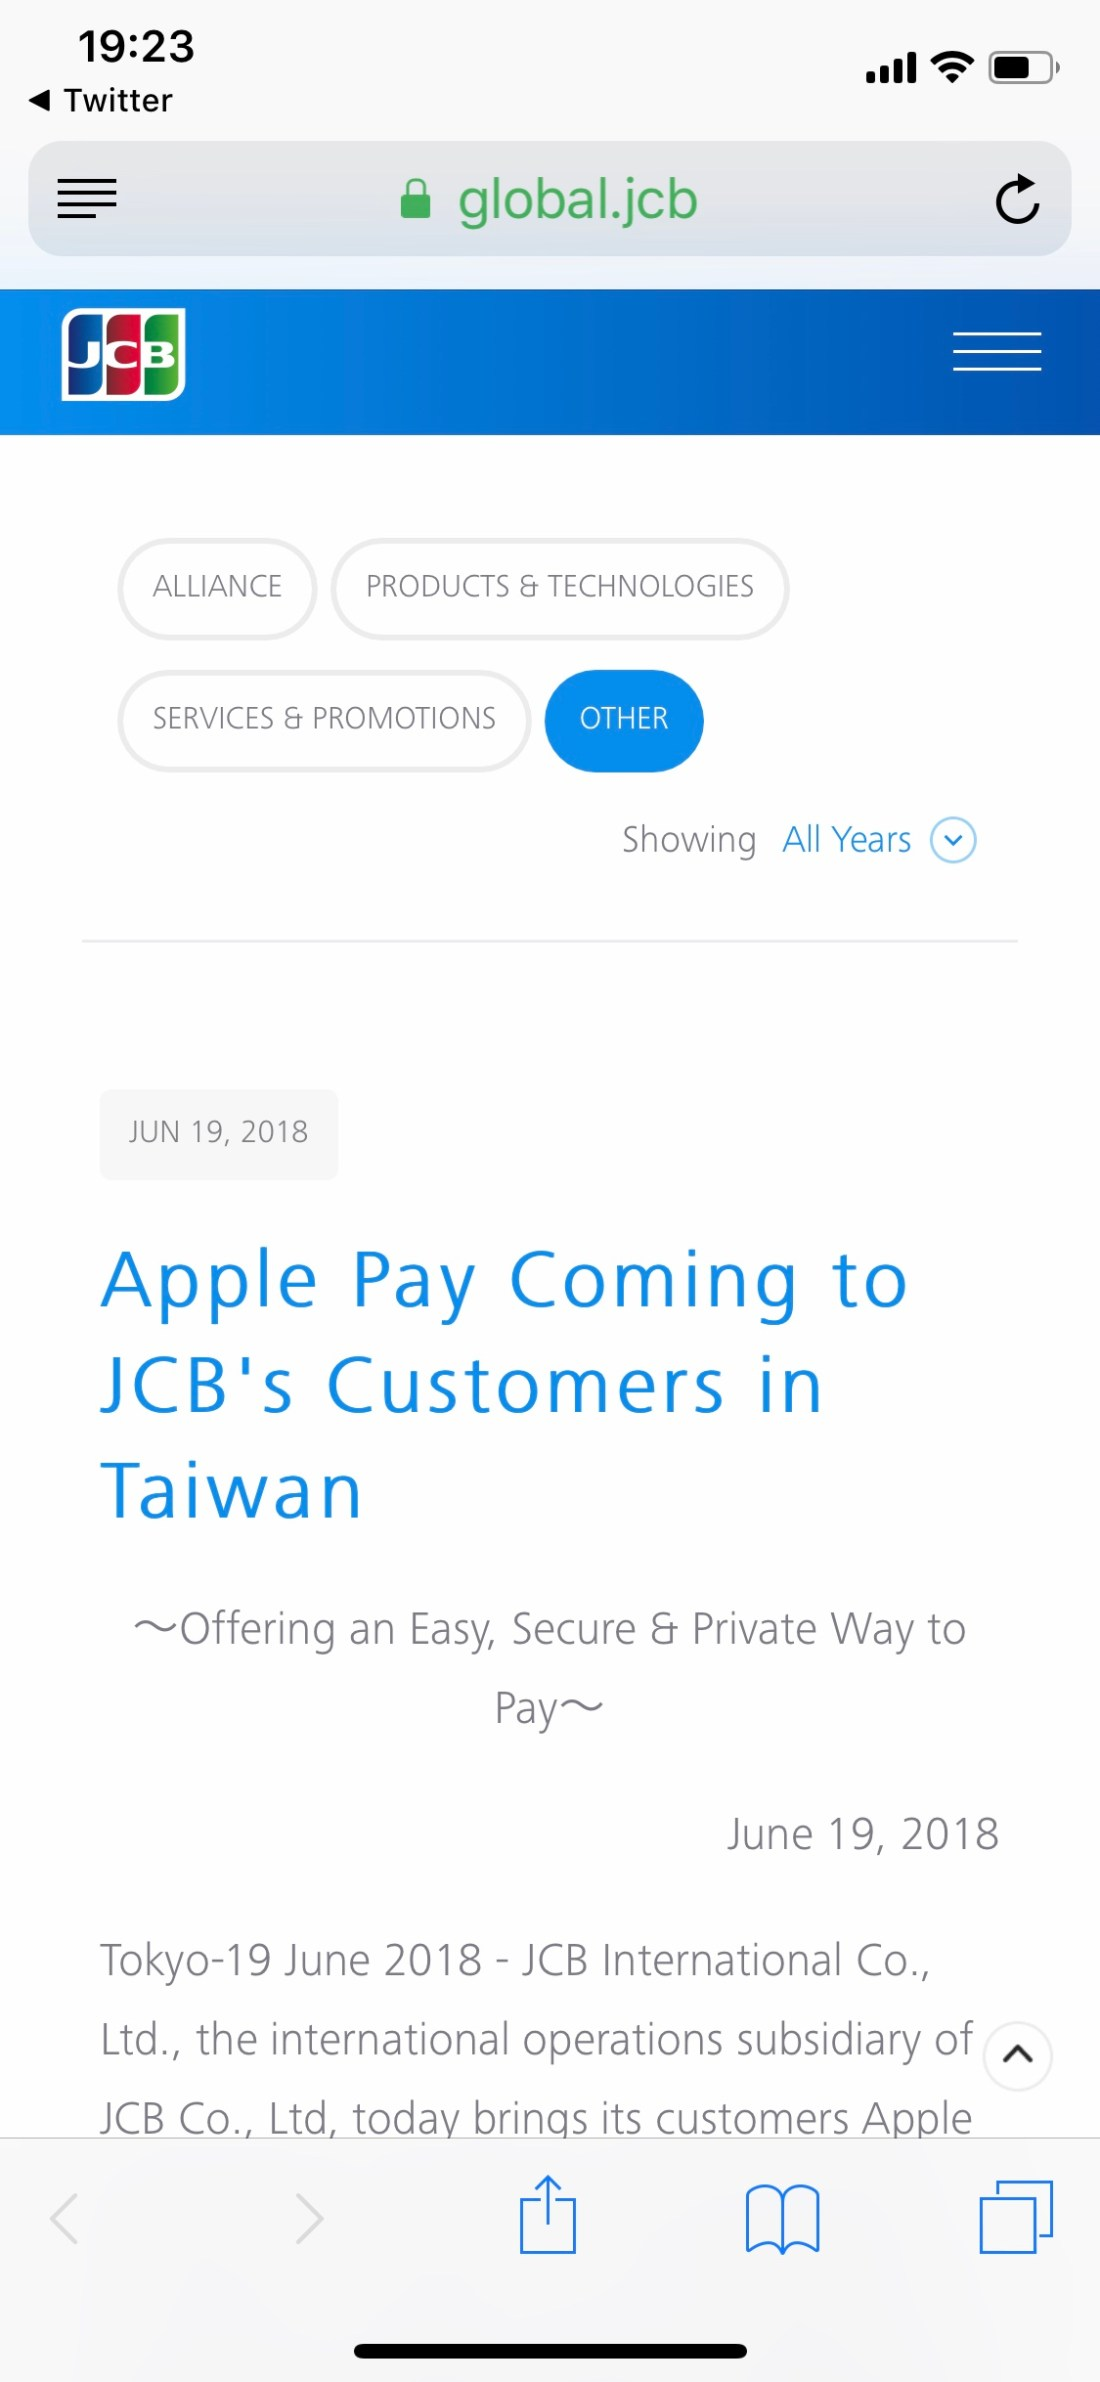 JCB Apple Pay in Taiwan